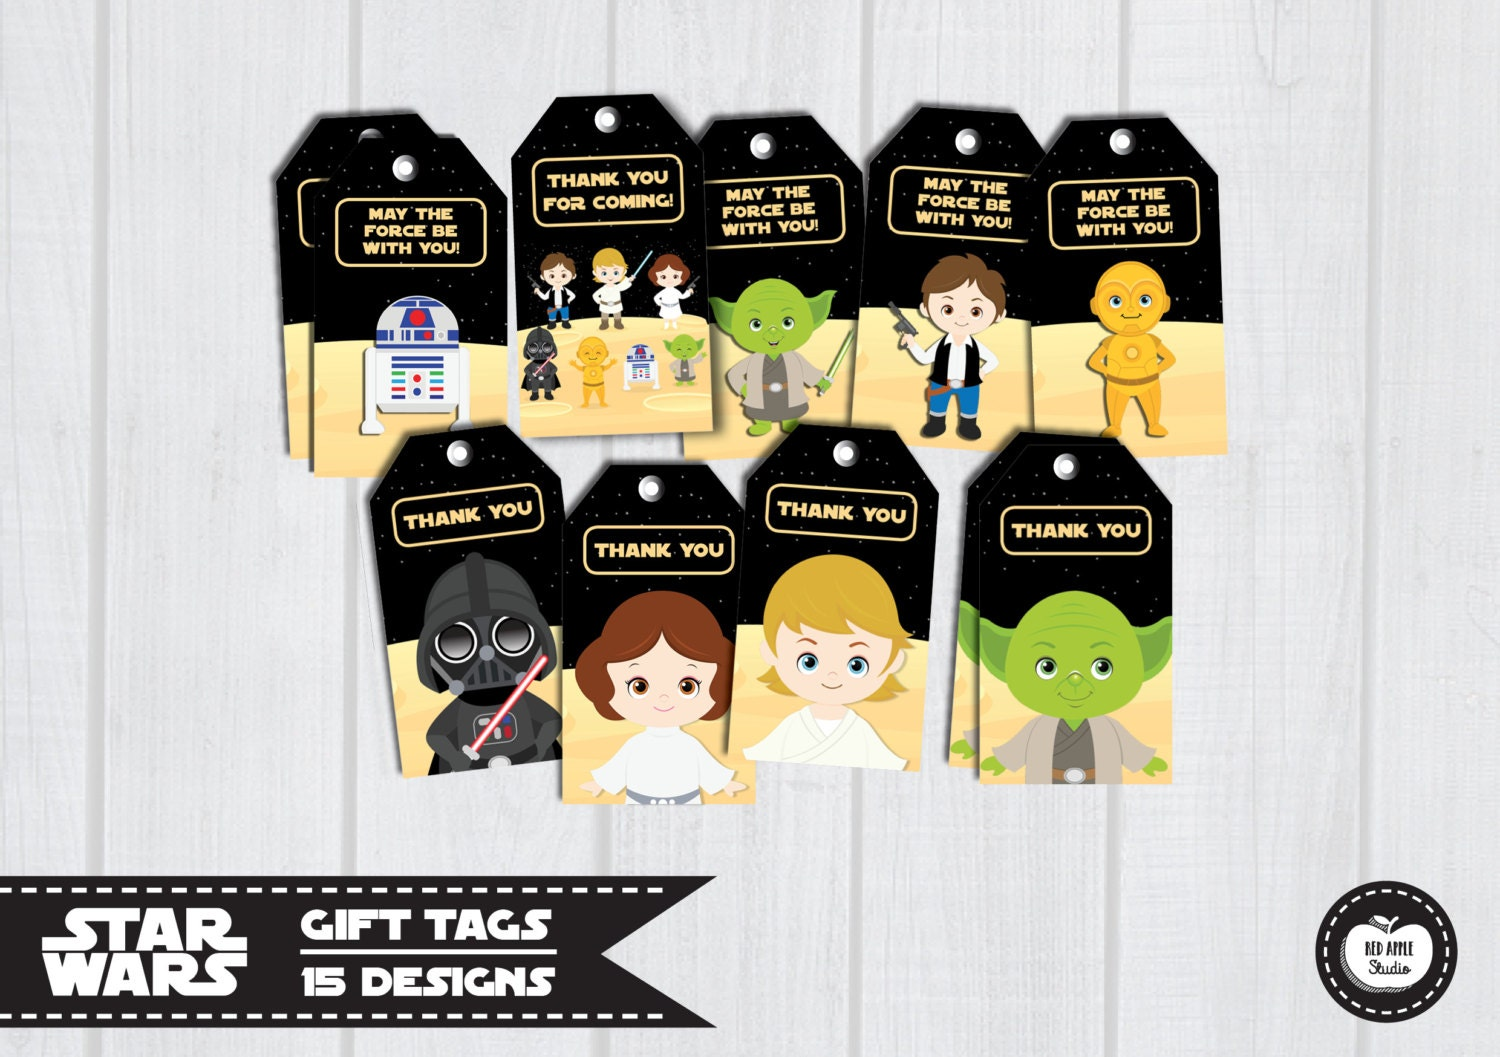 15x STAR WARS TAGS Gift Tags Favor Tags Birthday by RedAppleStudio